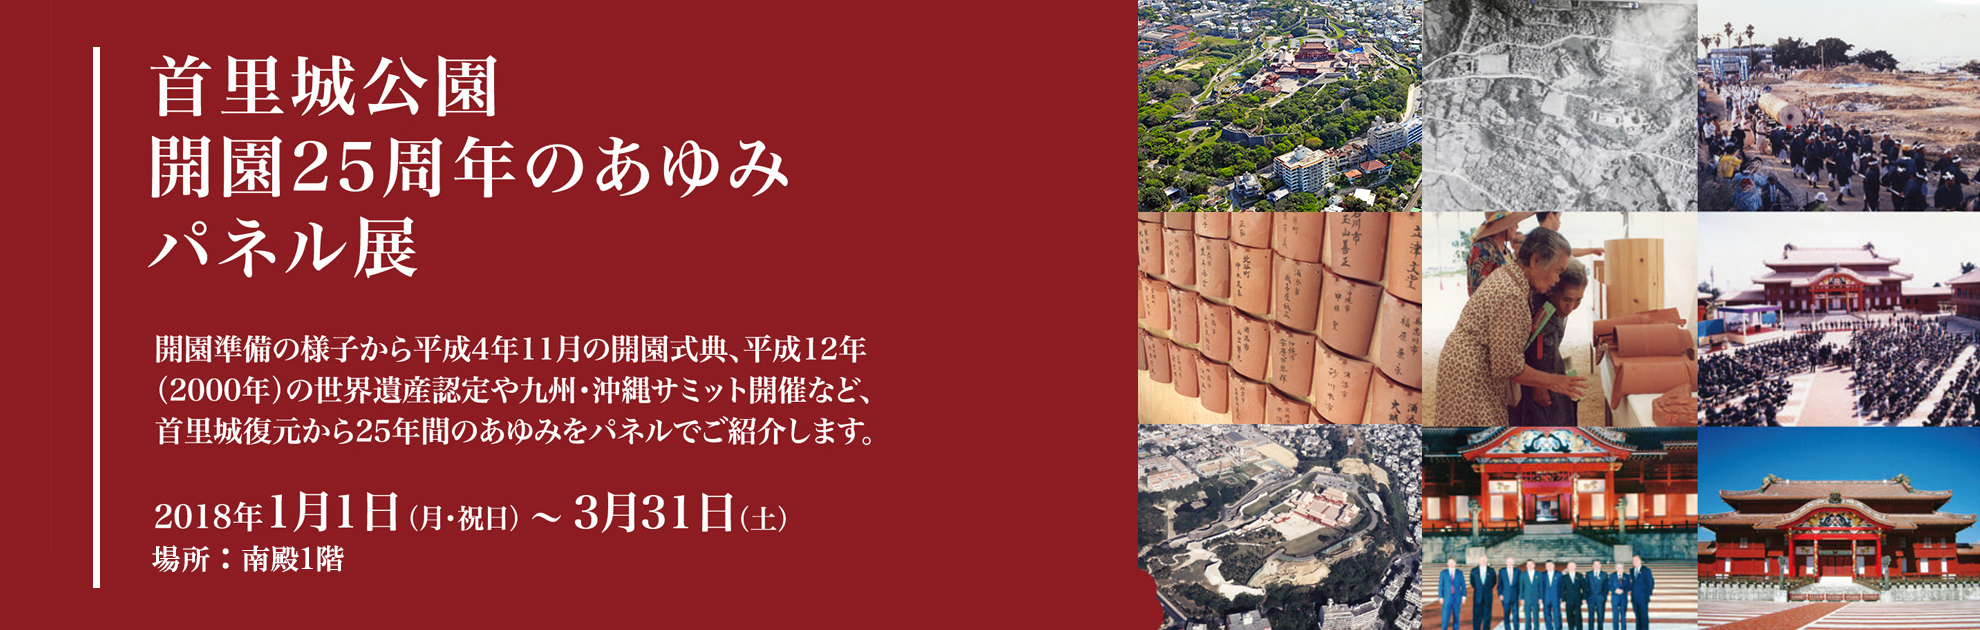 Ayumi panel exhibition holding of the 25th anniversary of the Shurijo Castle Park opening of the park